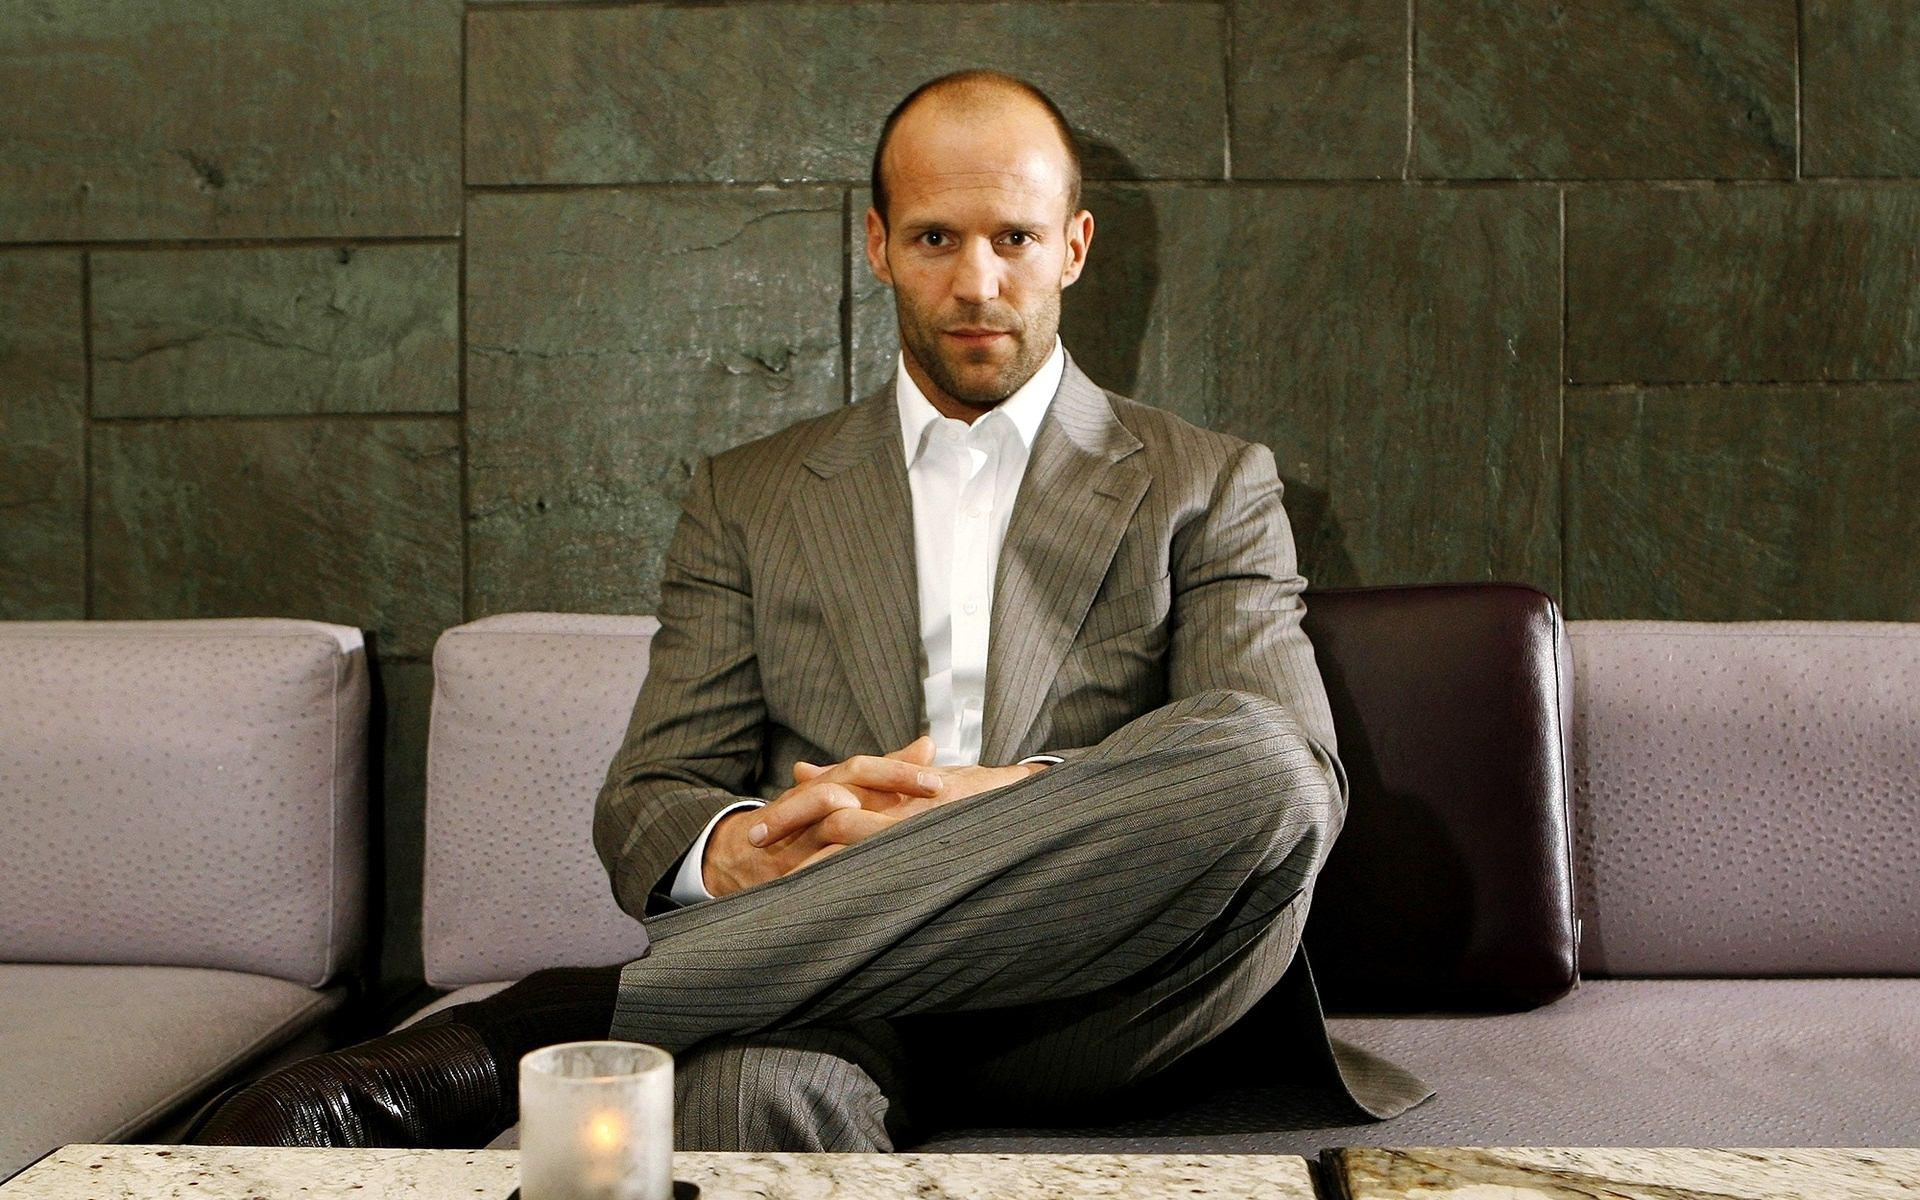 Jason Statham Wallpapers HD Model - Face Wallpapers